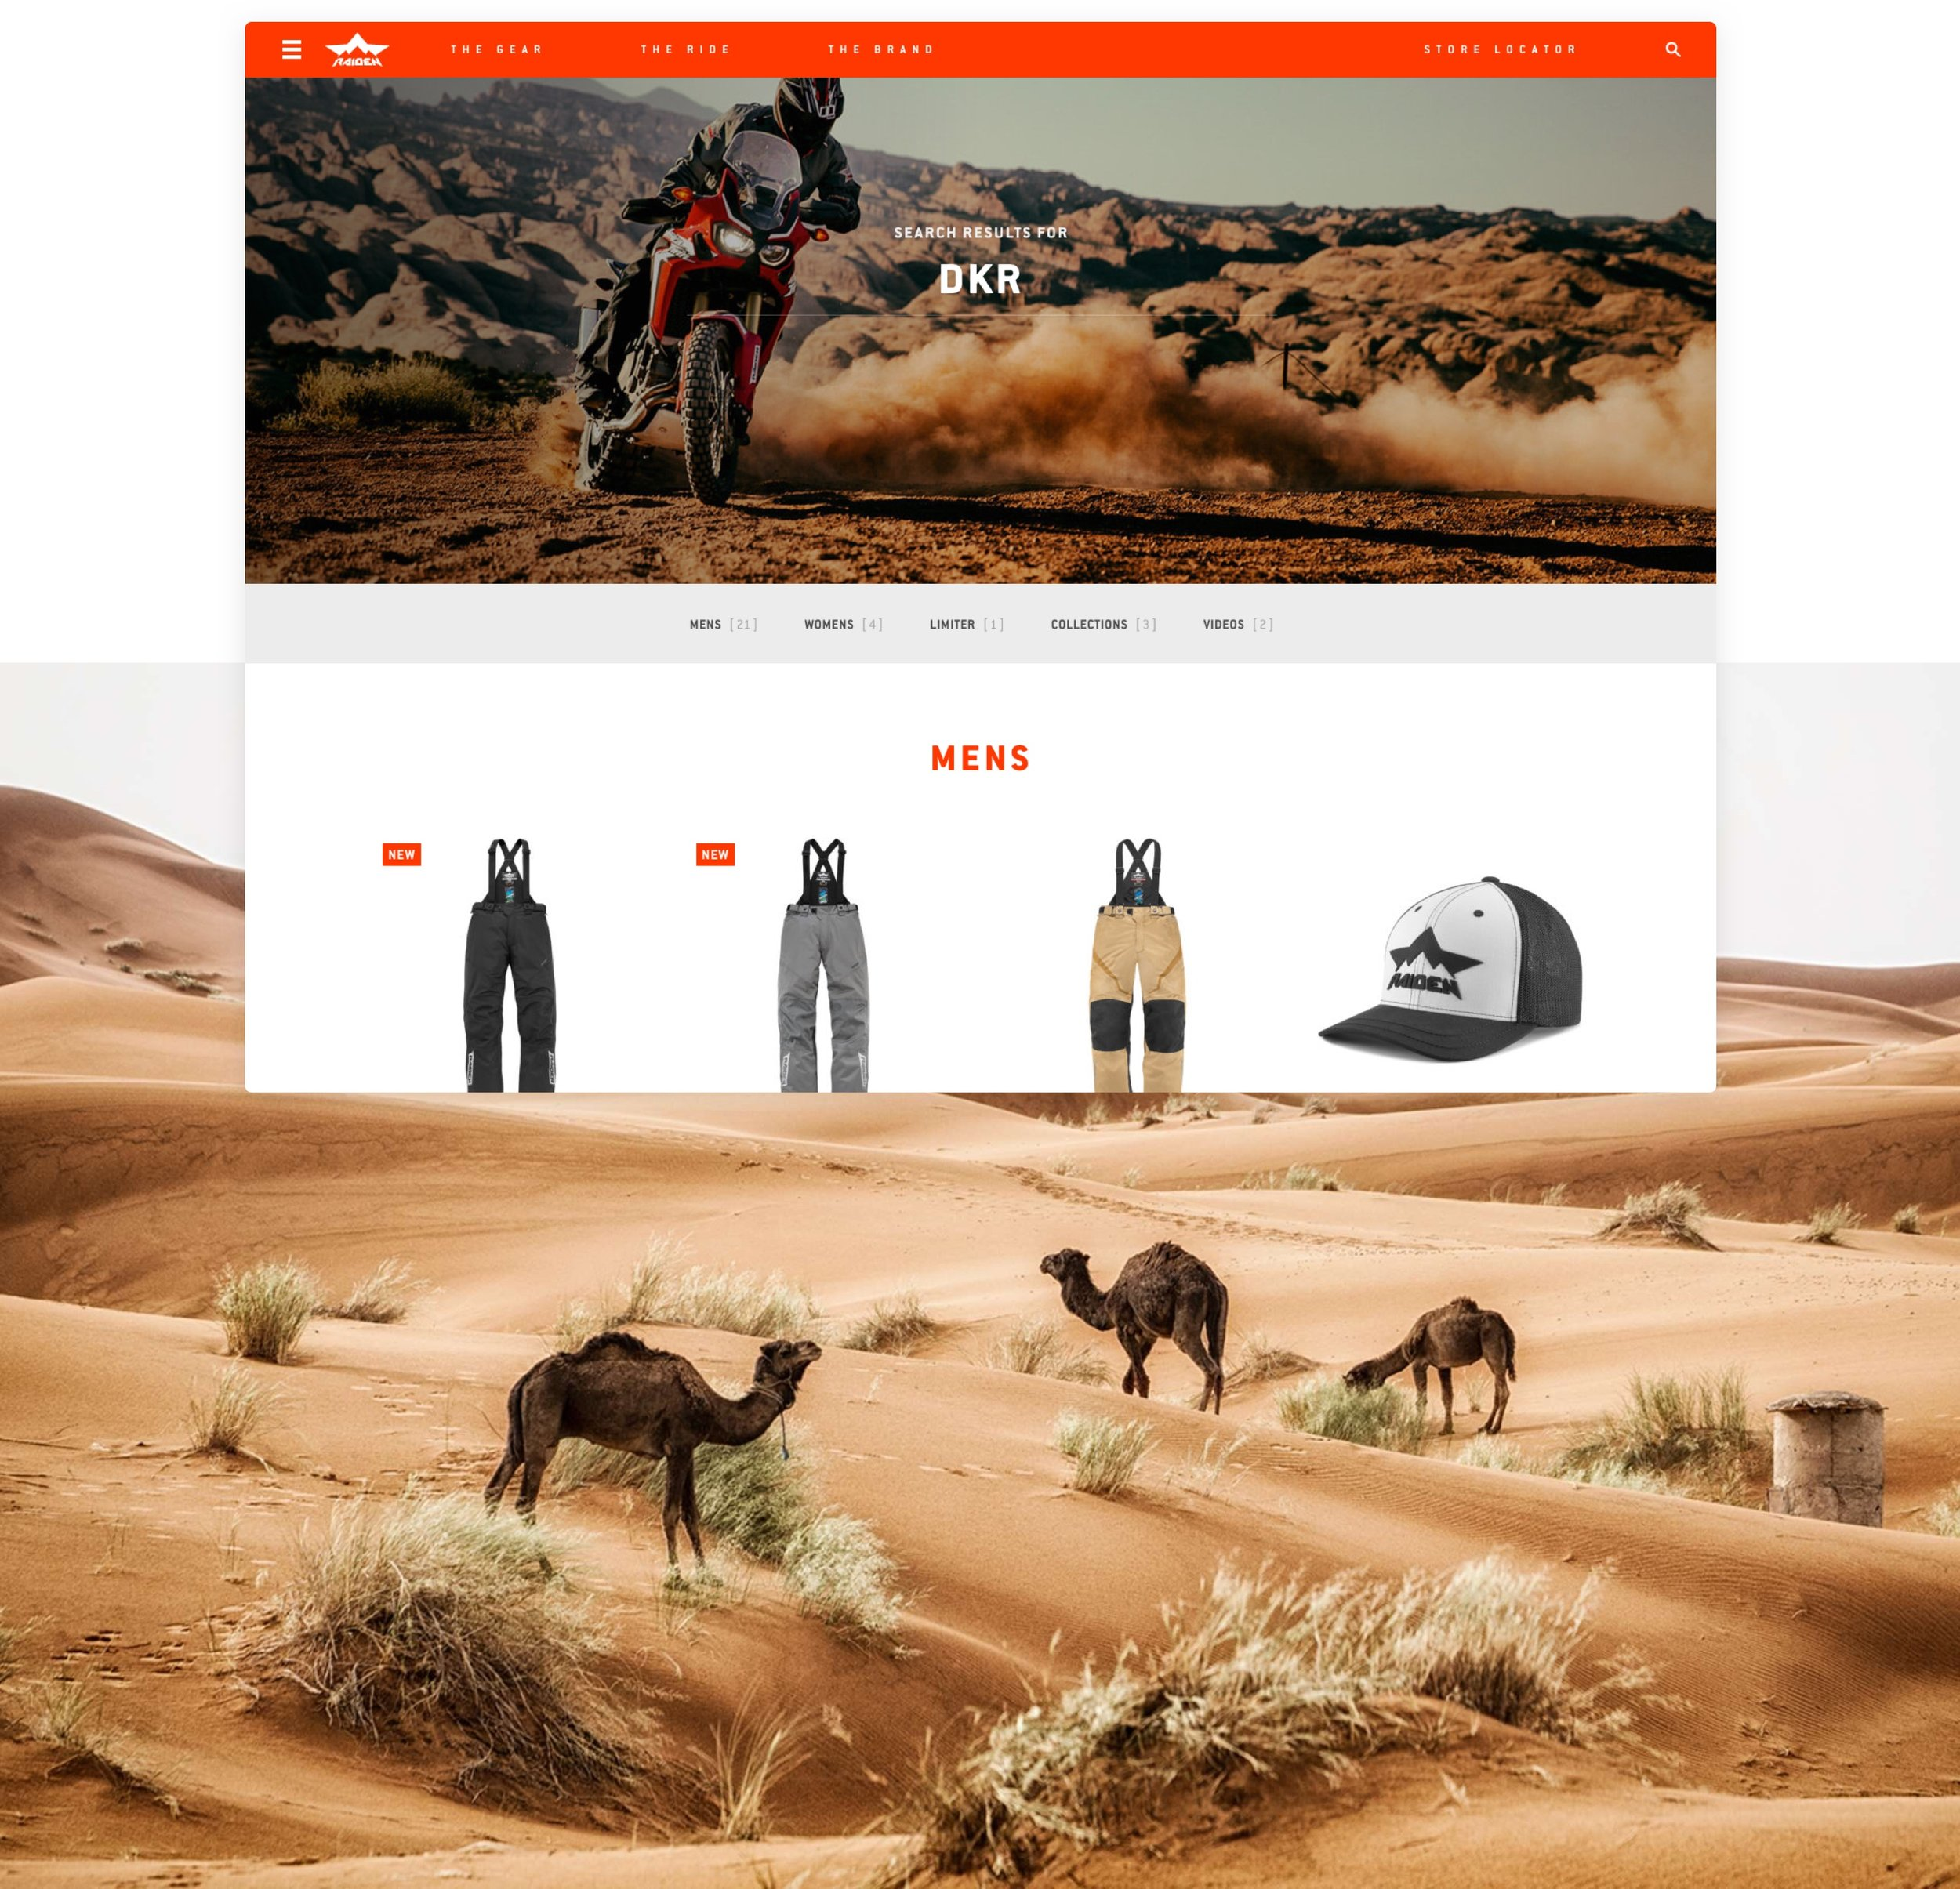 icon_camels-2.jpg